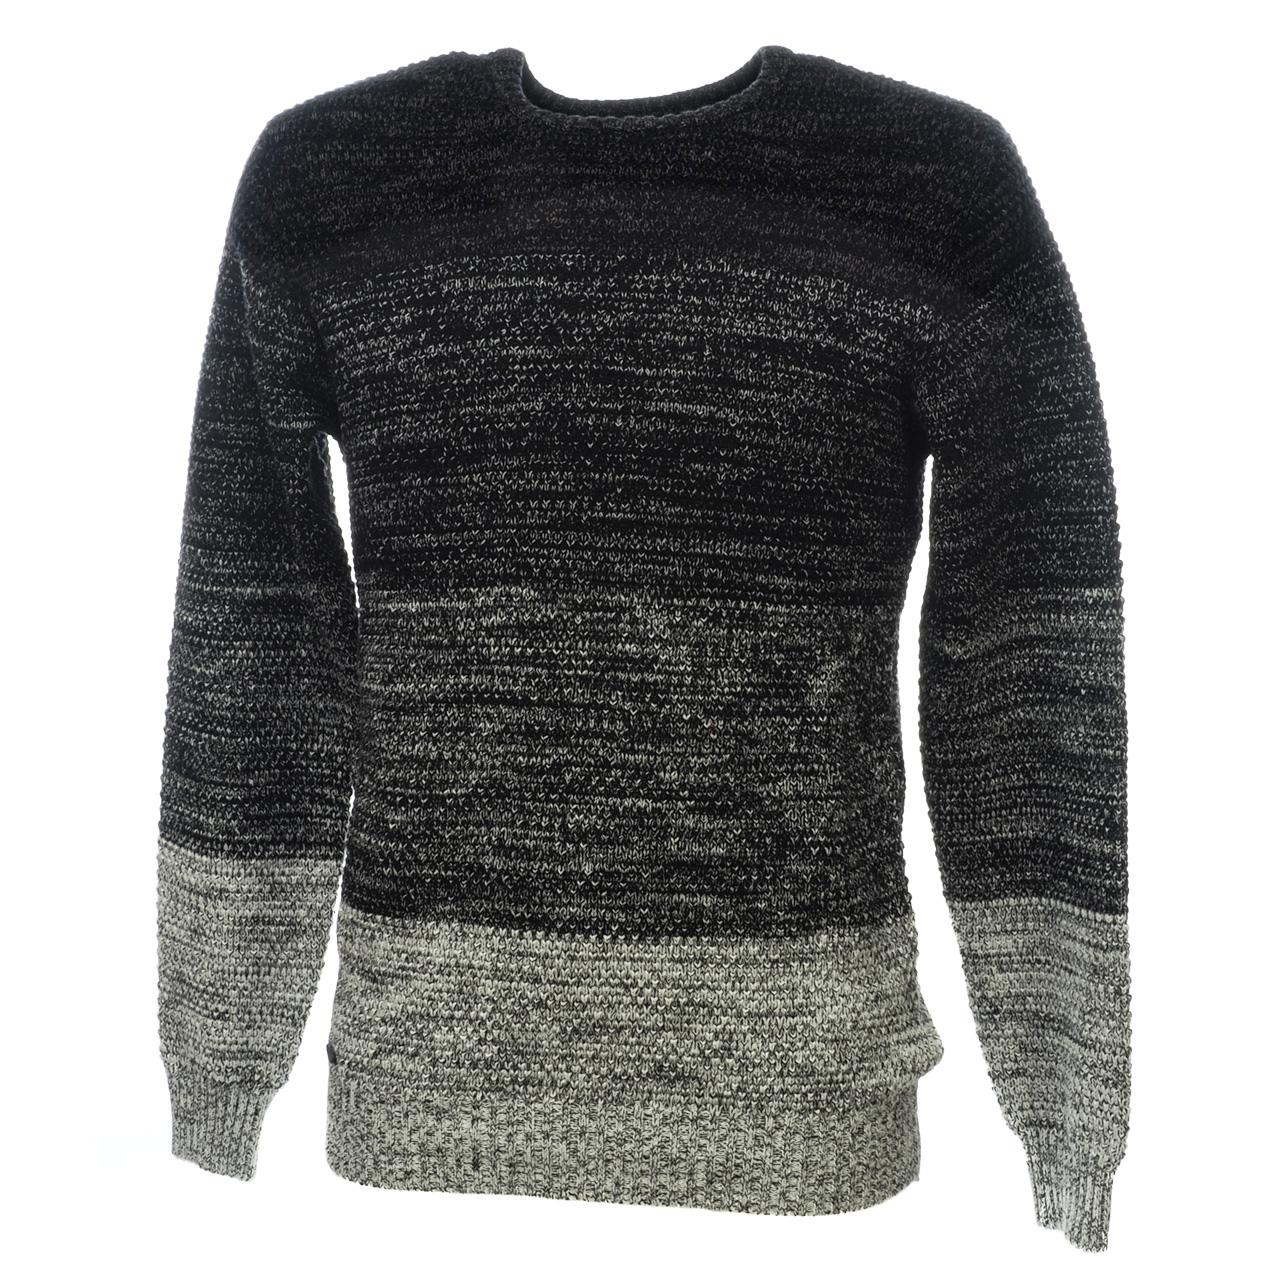 Sweater-RMS-26-Alfred-Black-Black-Sweater-15826-New